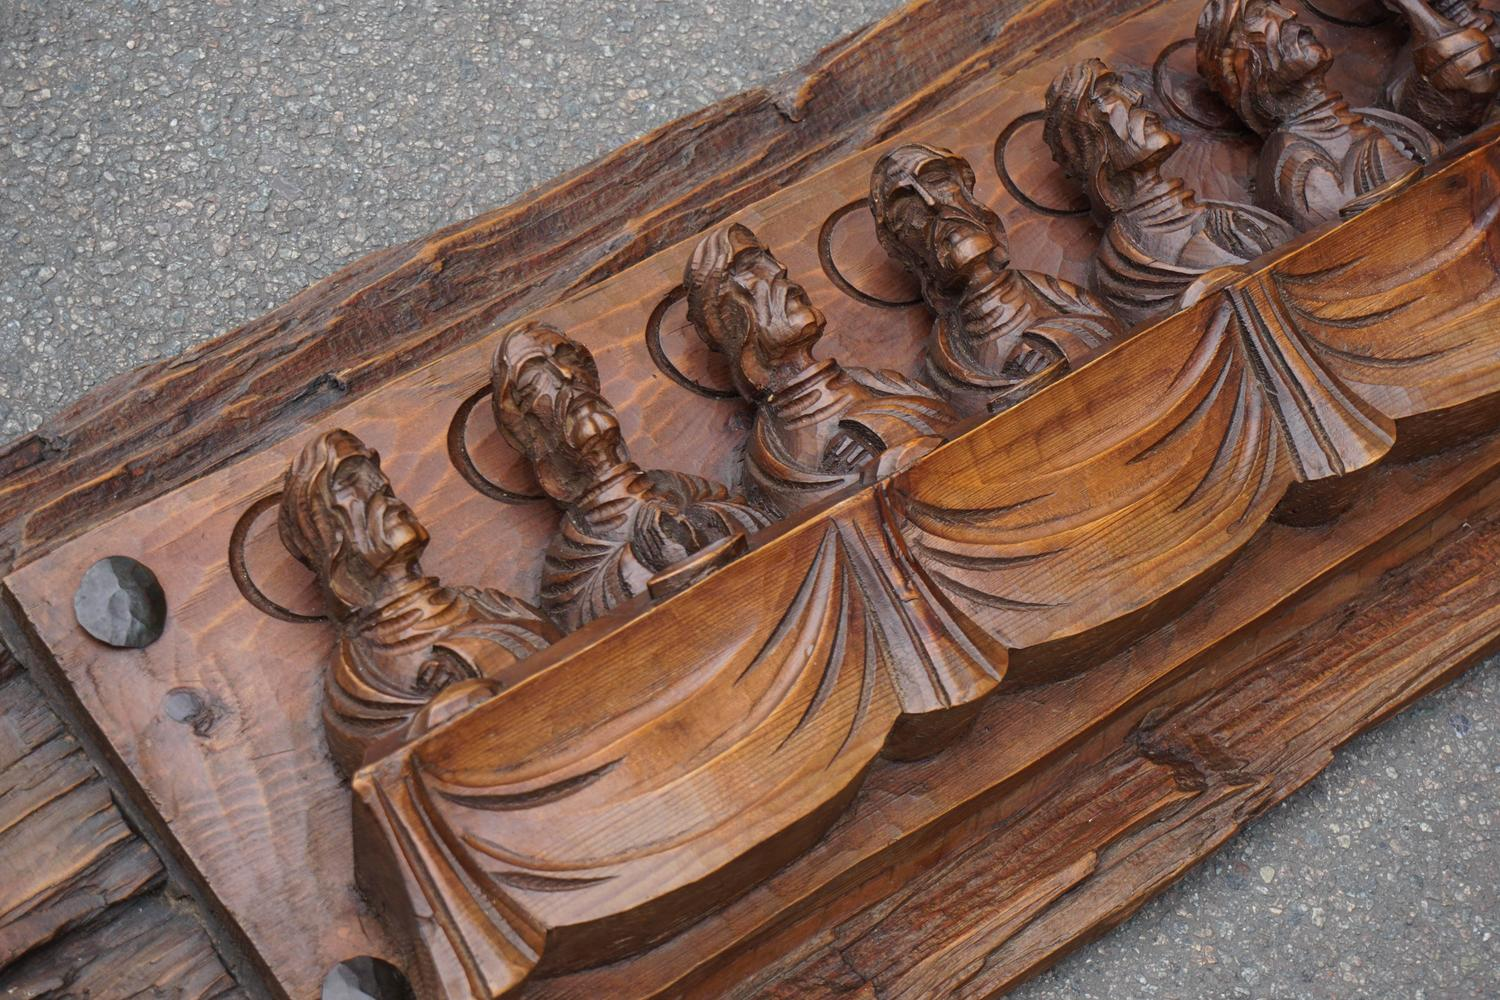 Wood carving representing the last supper for sale at stdibs